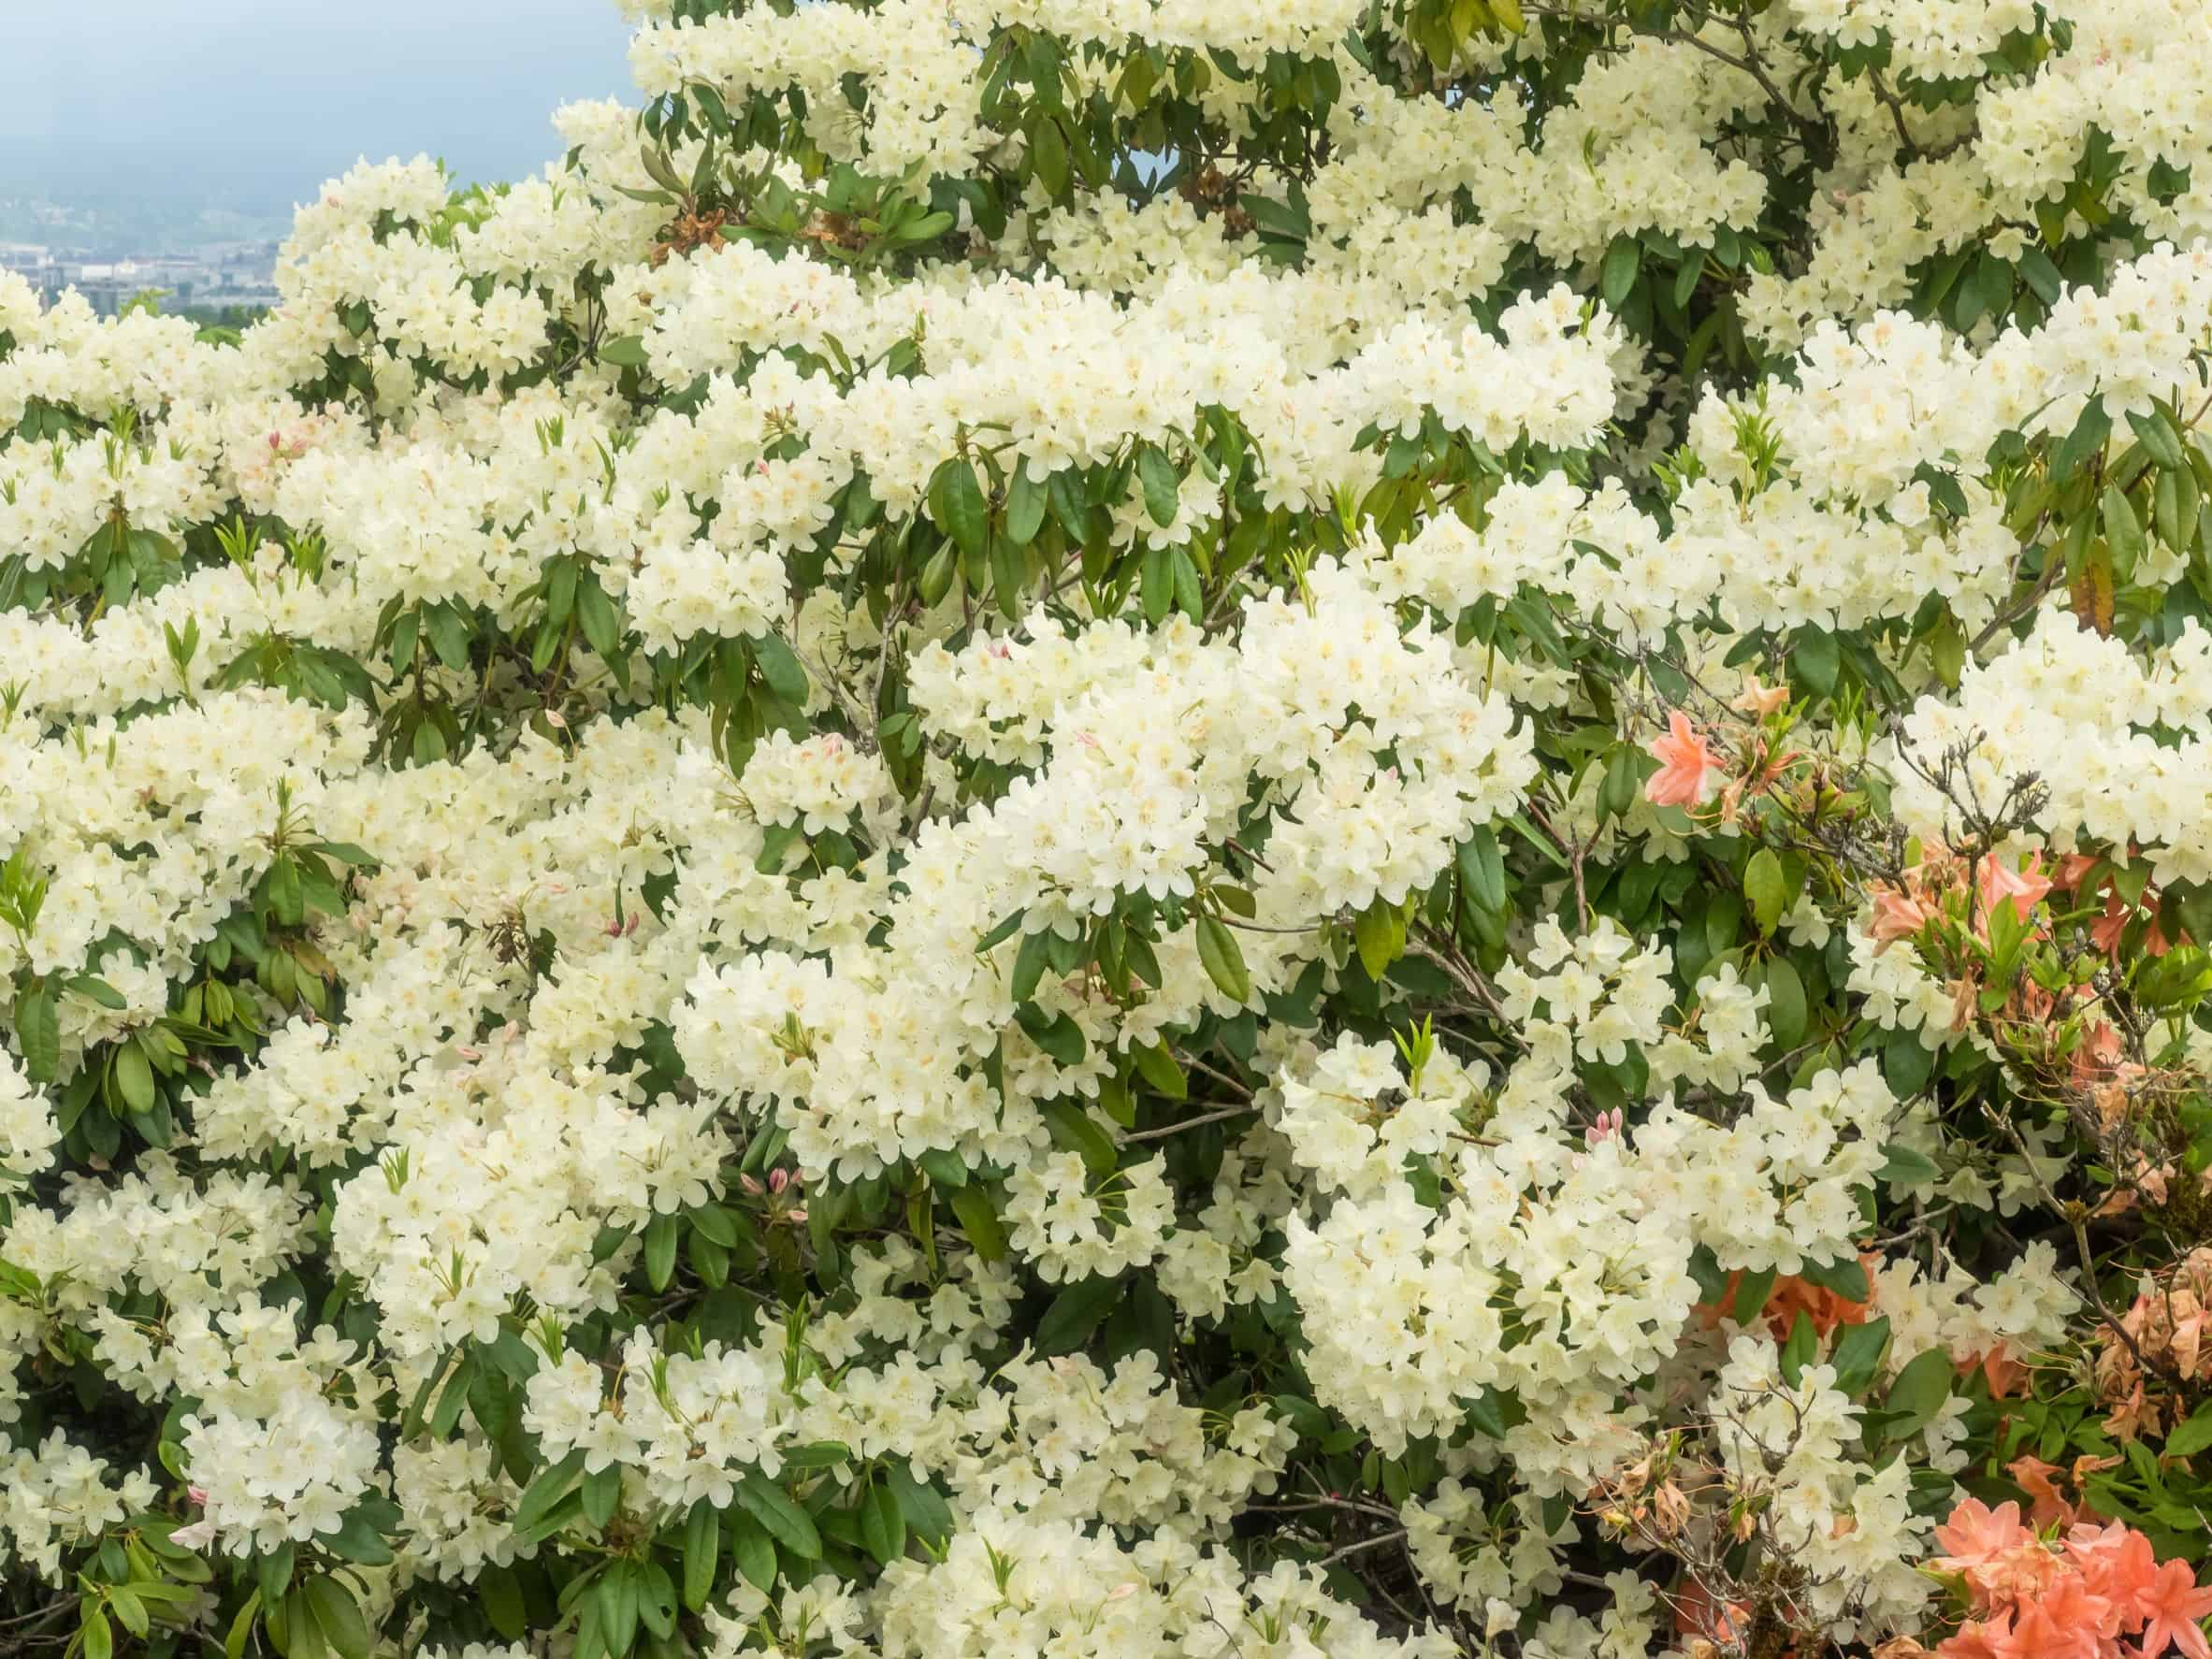 Sweet azaleas smell nice but they are poisonous.